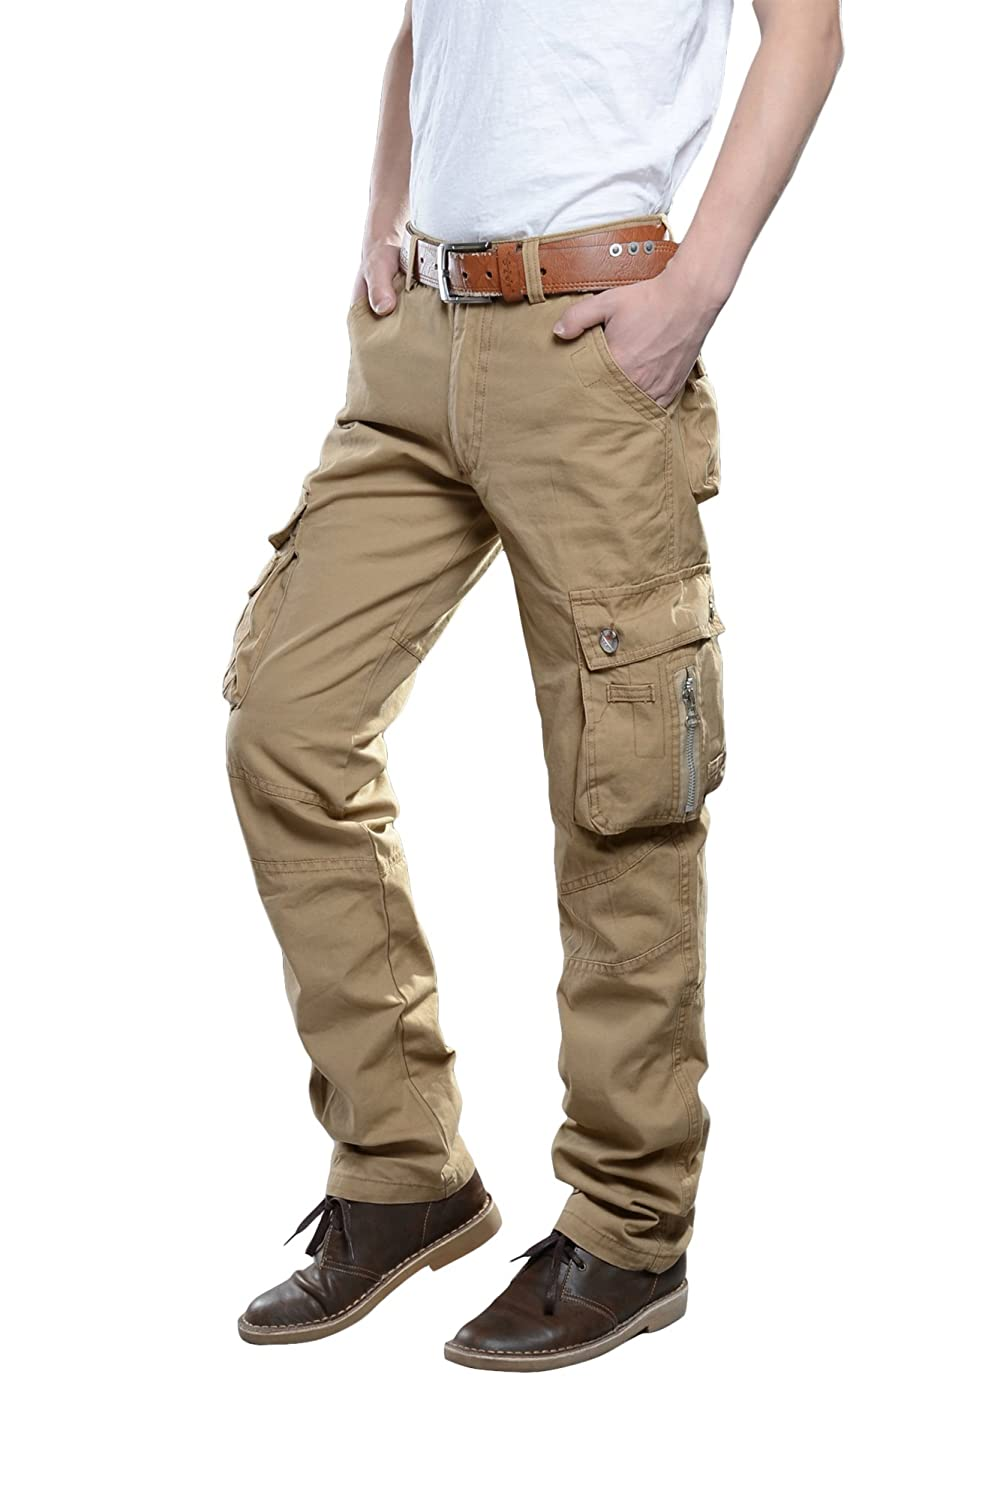 TAIPOVE Mens Lightweight Quick-Dry Outdoor Cargo Pants Hiking Convertible Pant Zip Off Fishing Travel Mountain Trousers